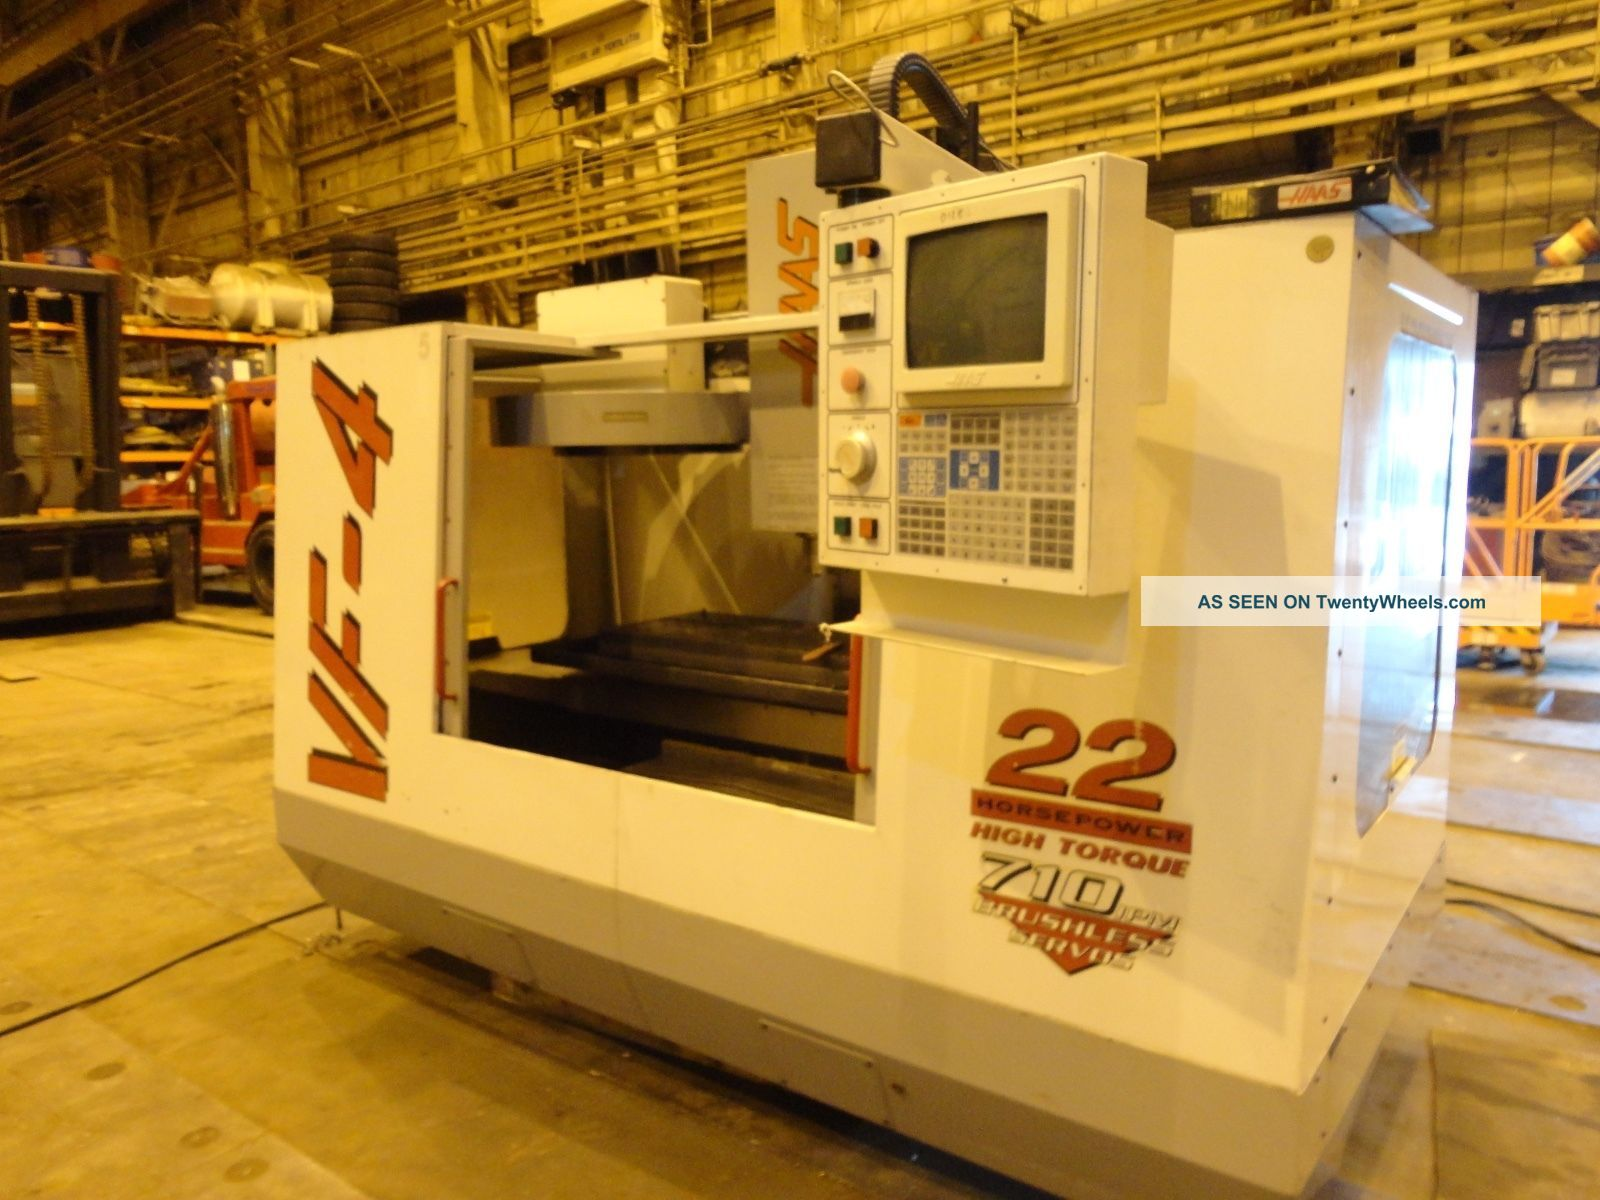 Haas Vf4 Cnc Vertical Machining Center Mill Milling Machine - Loading Milling Machines photo